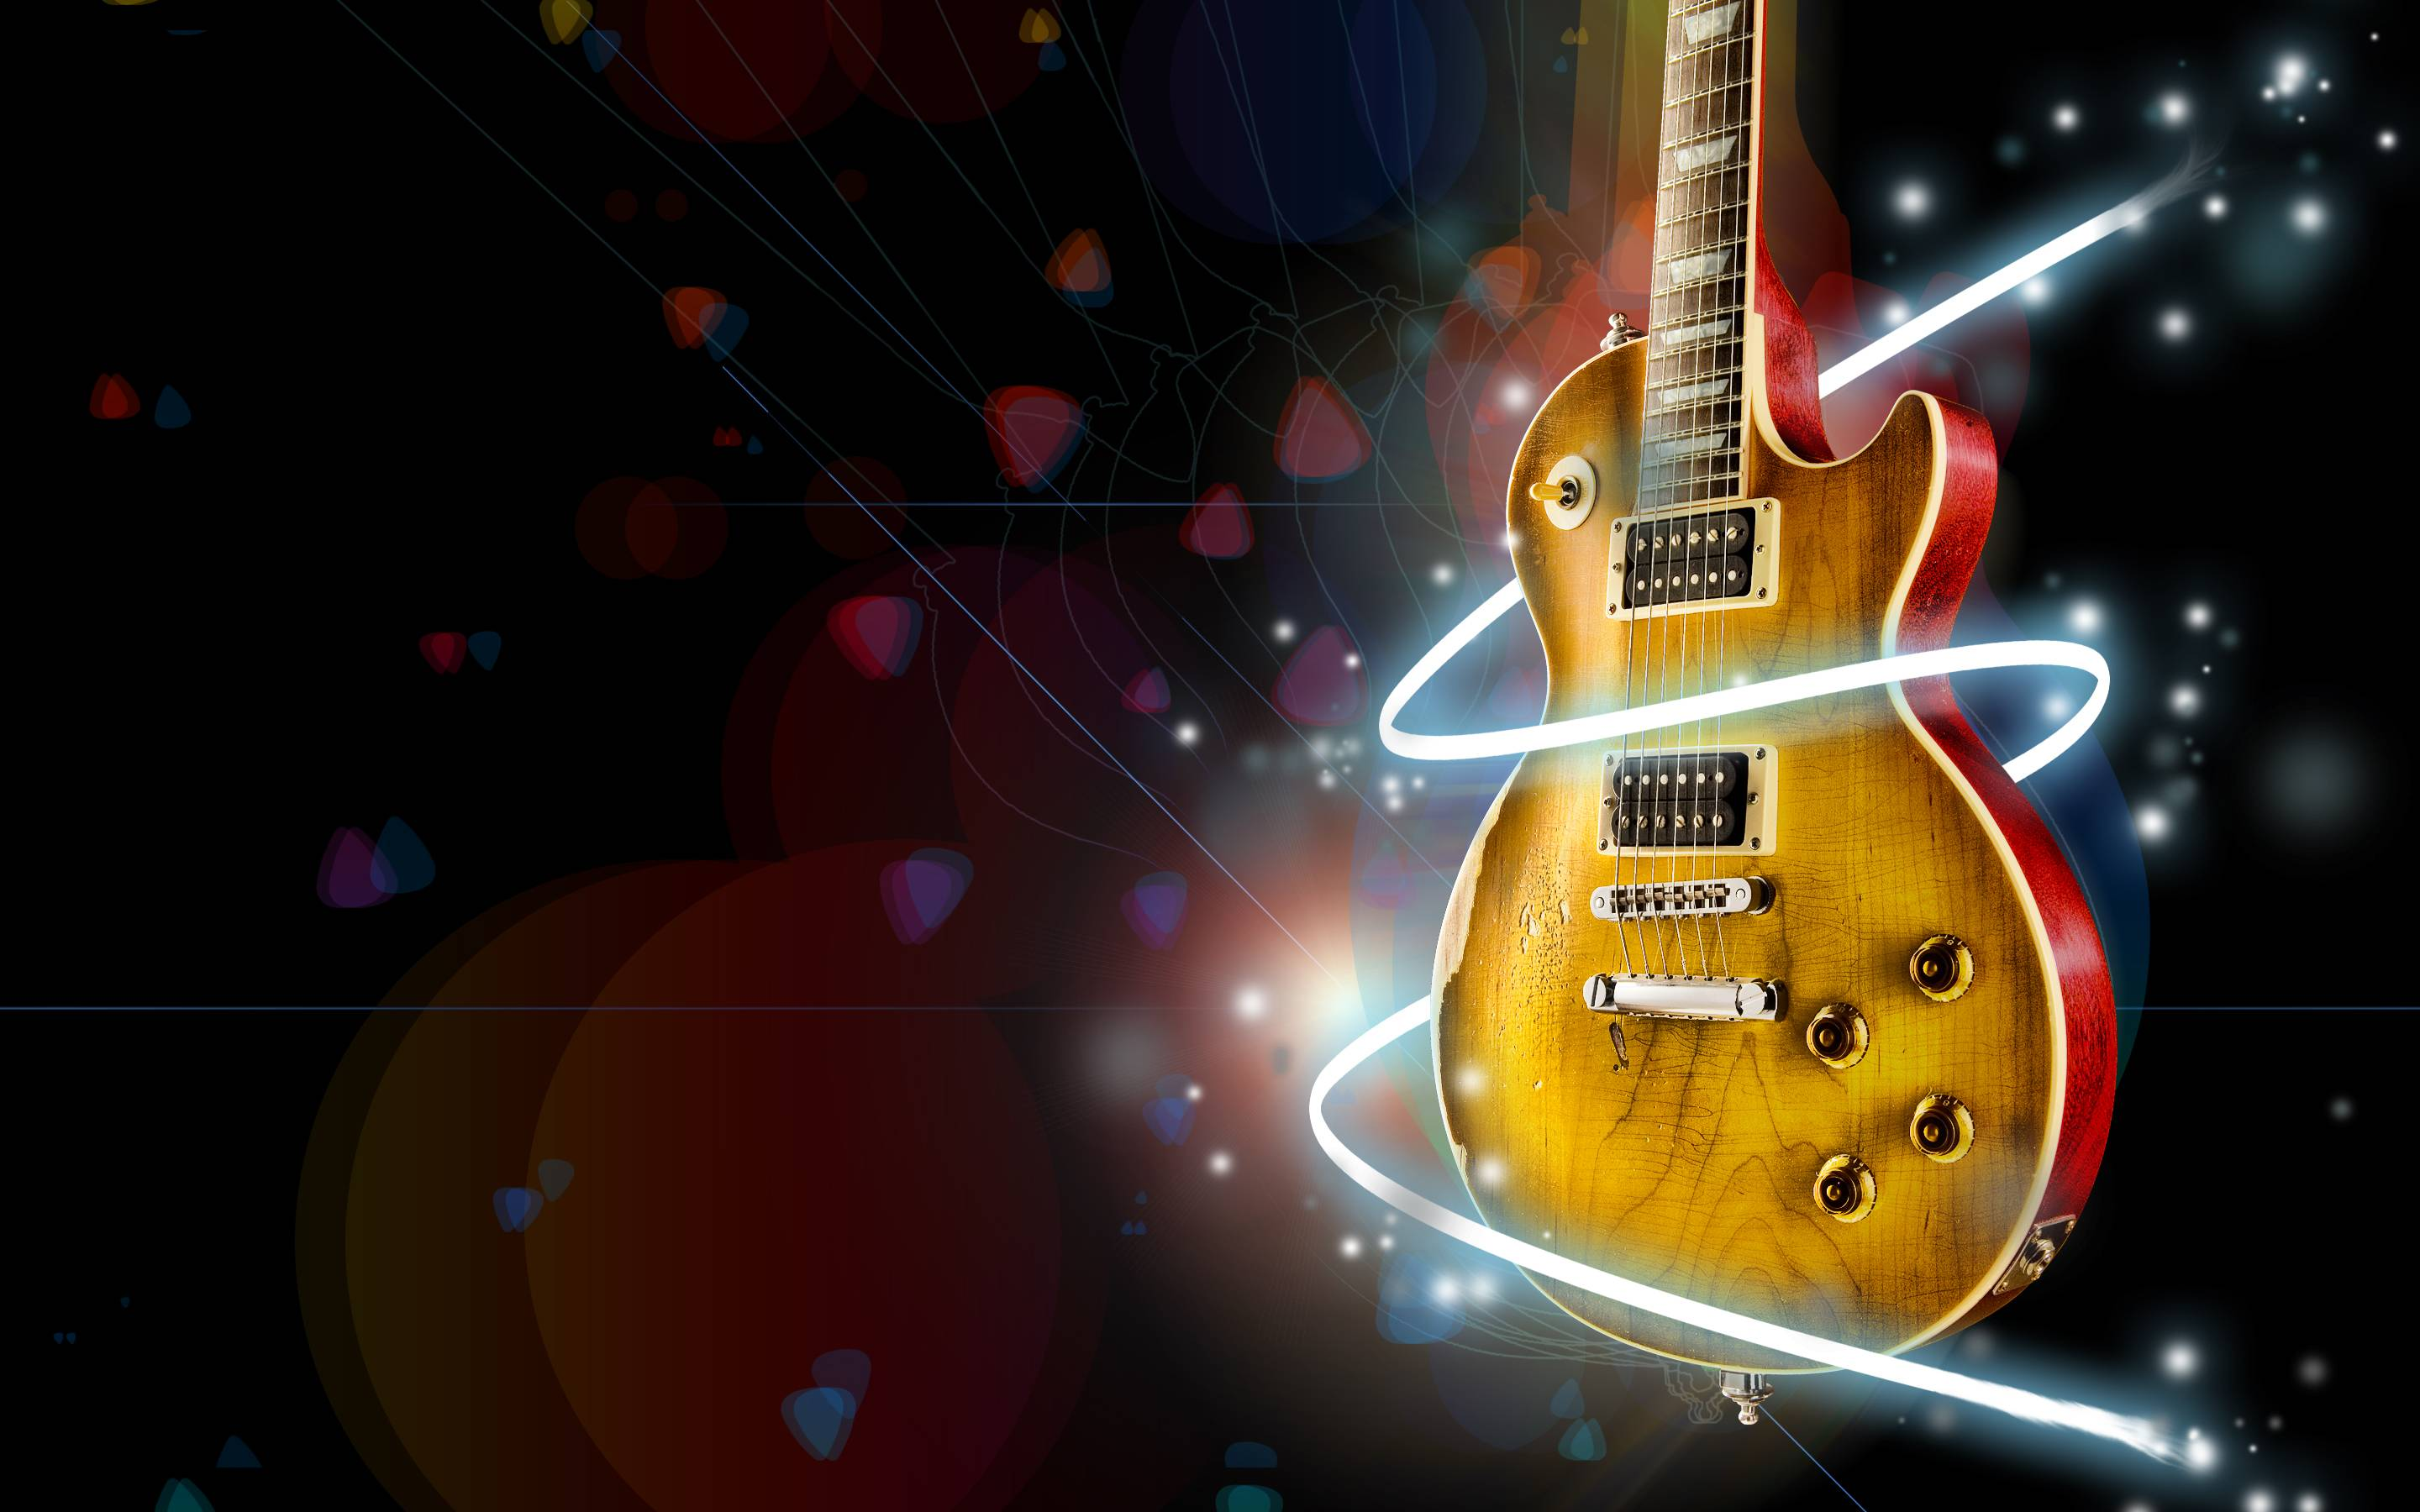 Guitar wallpapers hd wallpaper cave for New cool images